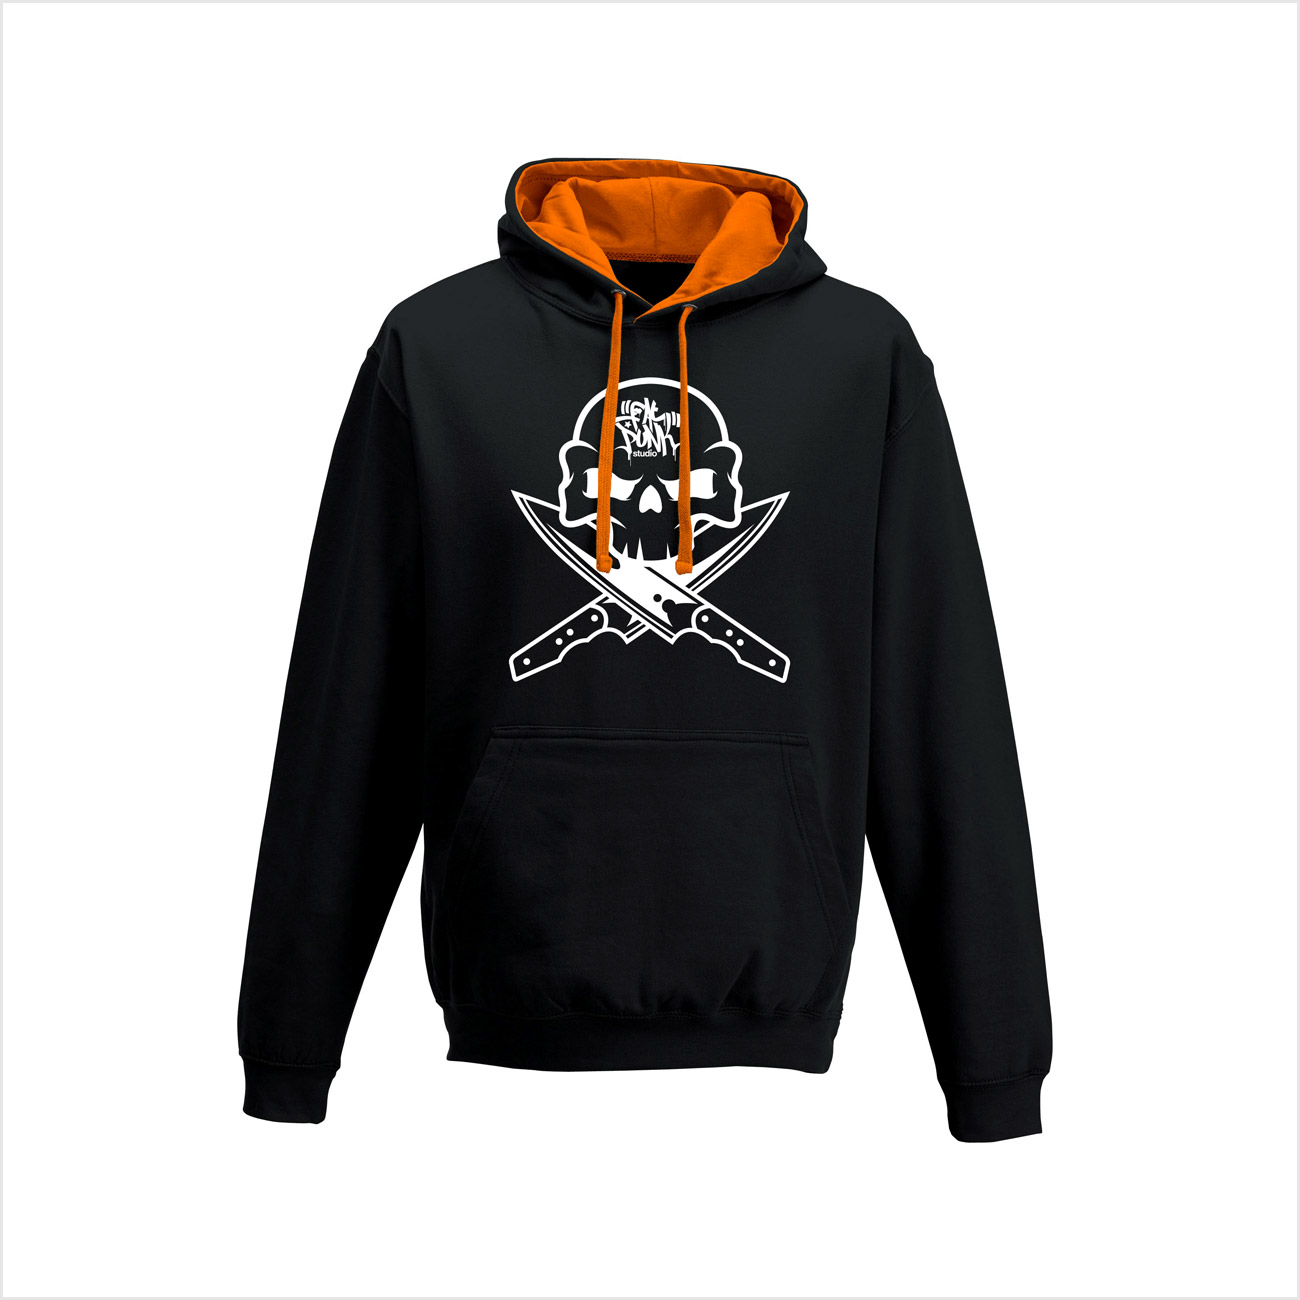 fat-punk-studio-team-skull-and-cross-knives-hoodie-black-01